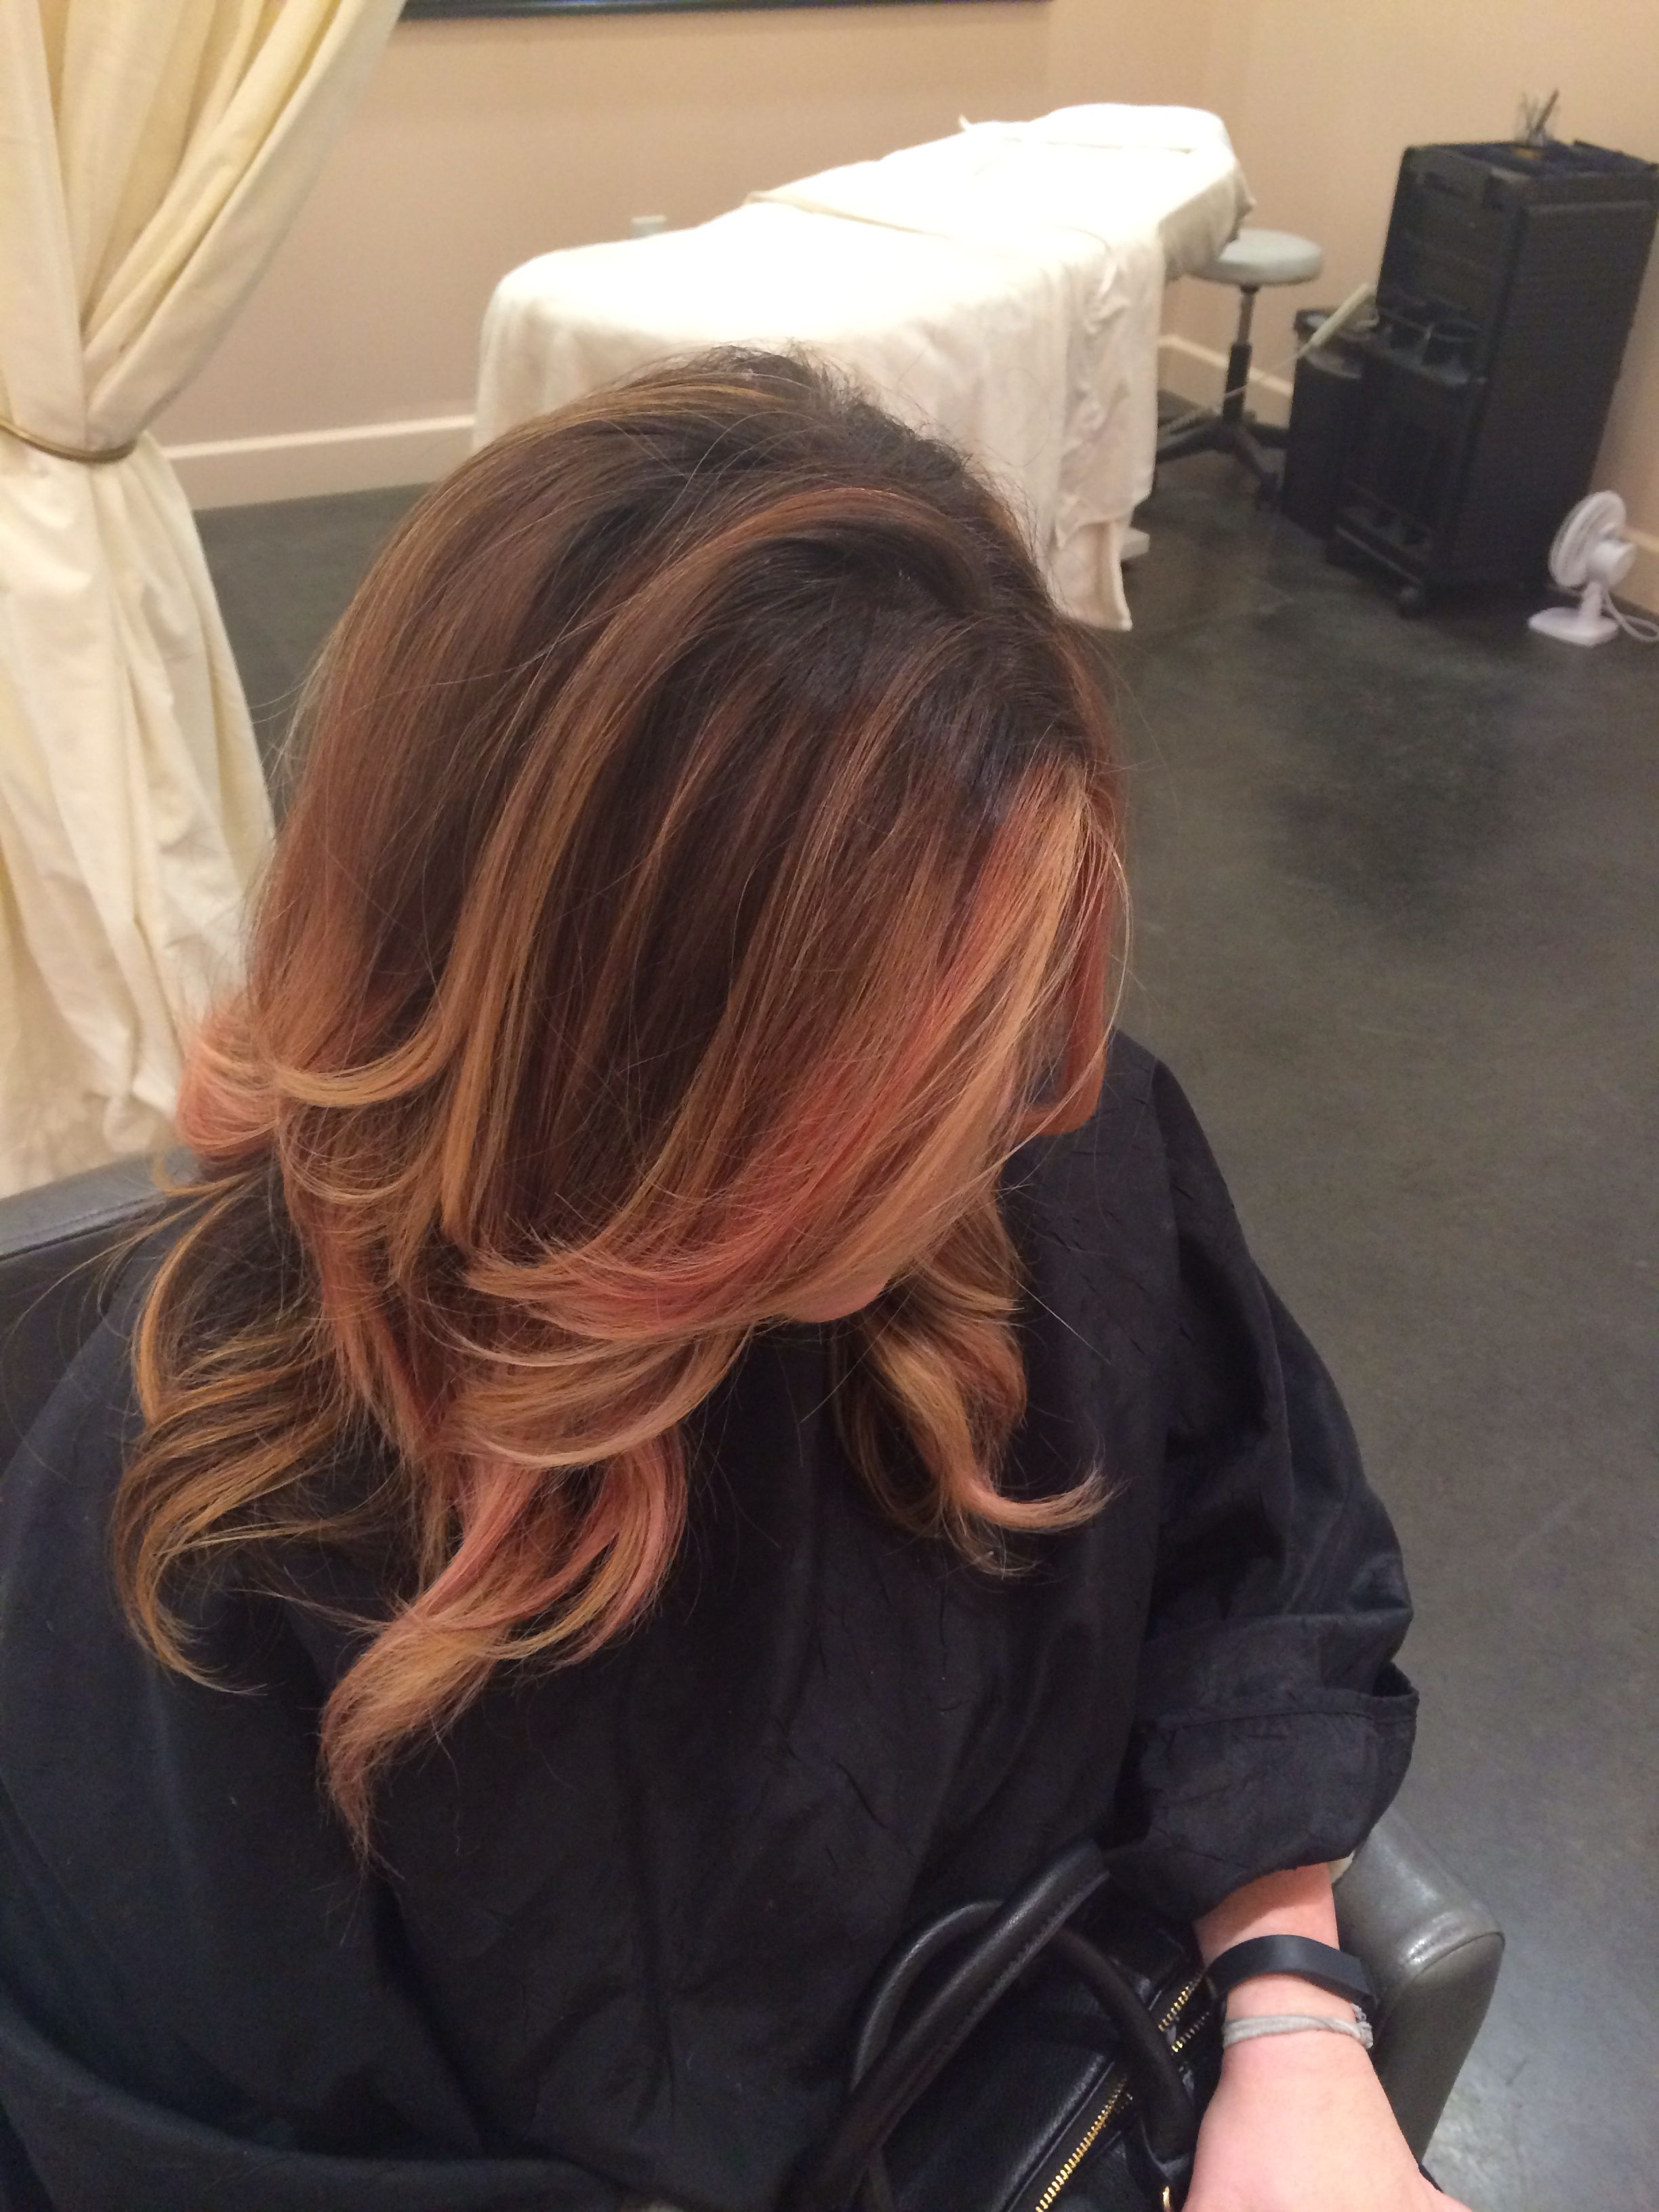 Rose gold lowlights, just funky enough to make my hair fun! Devin @ Salon Scarlet is amazing!